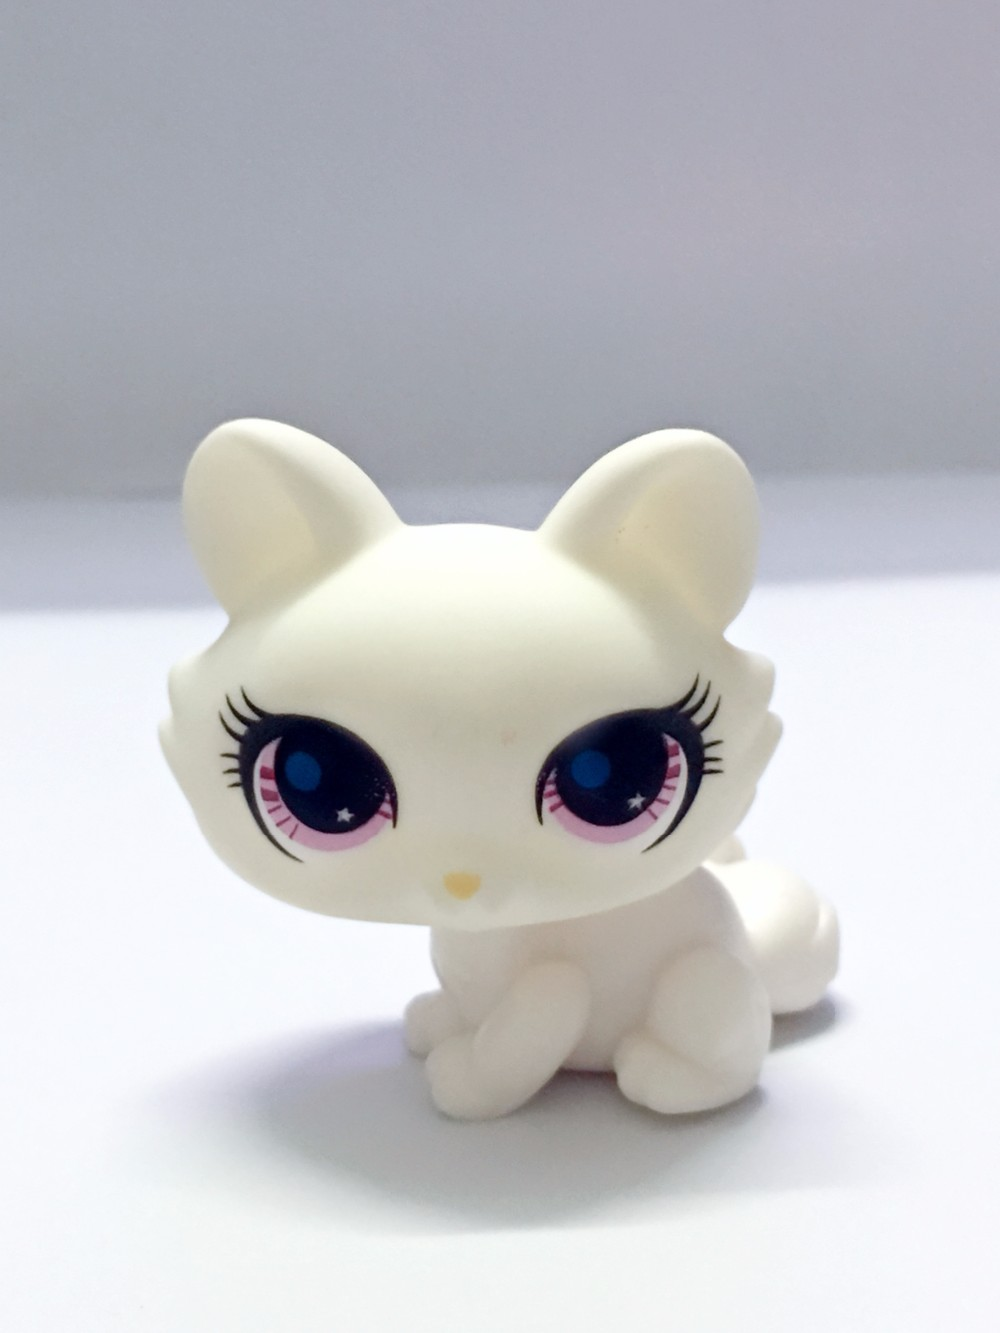 Popular Toys Cute : Popular lps toys cat buy cheap lots from